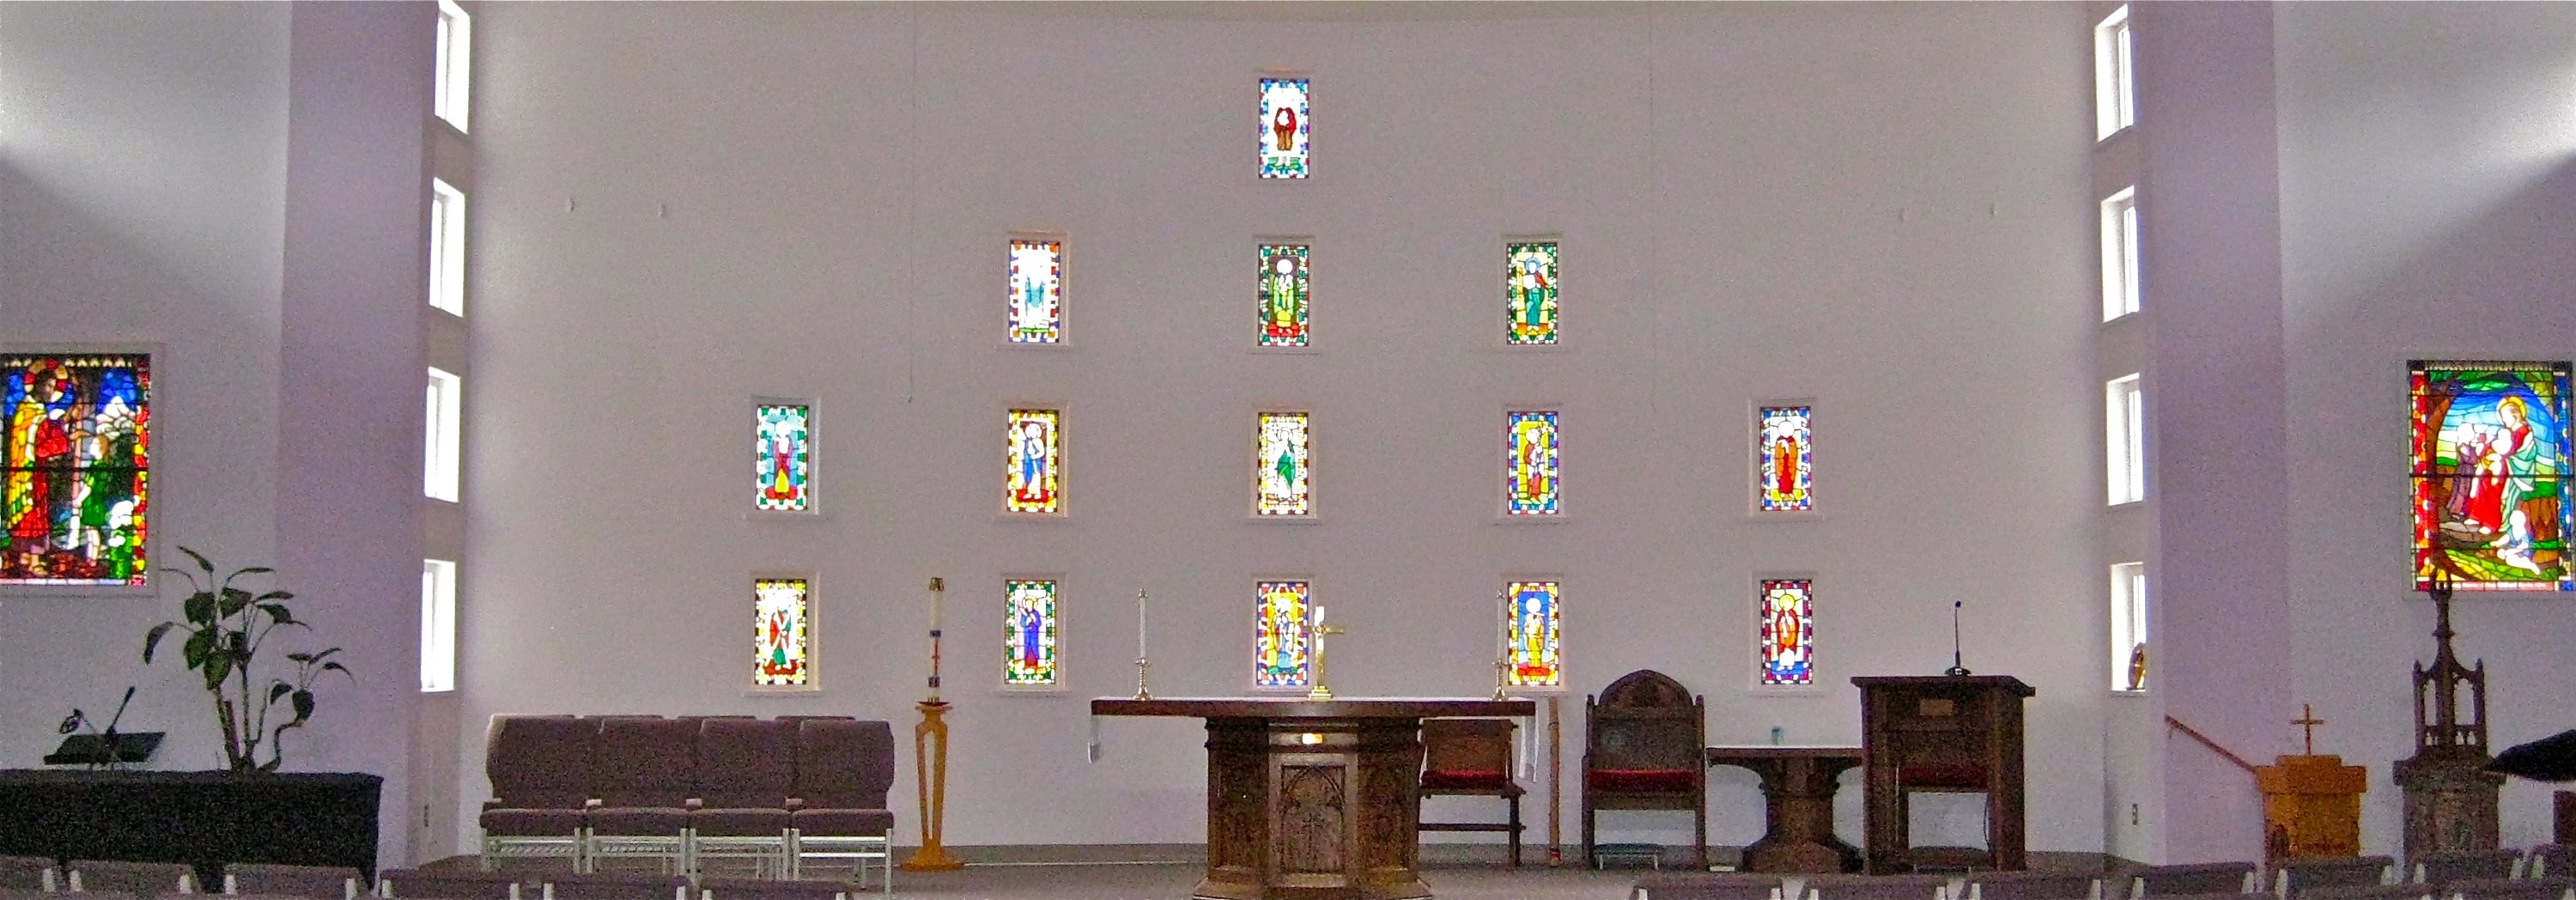 "click for details of the ""Disciple Windows"""